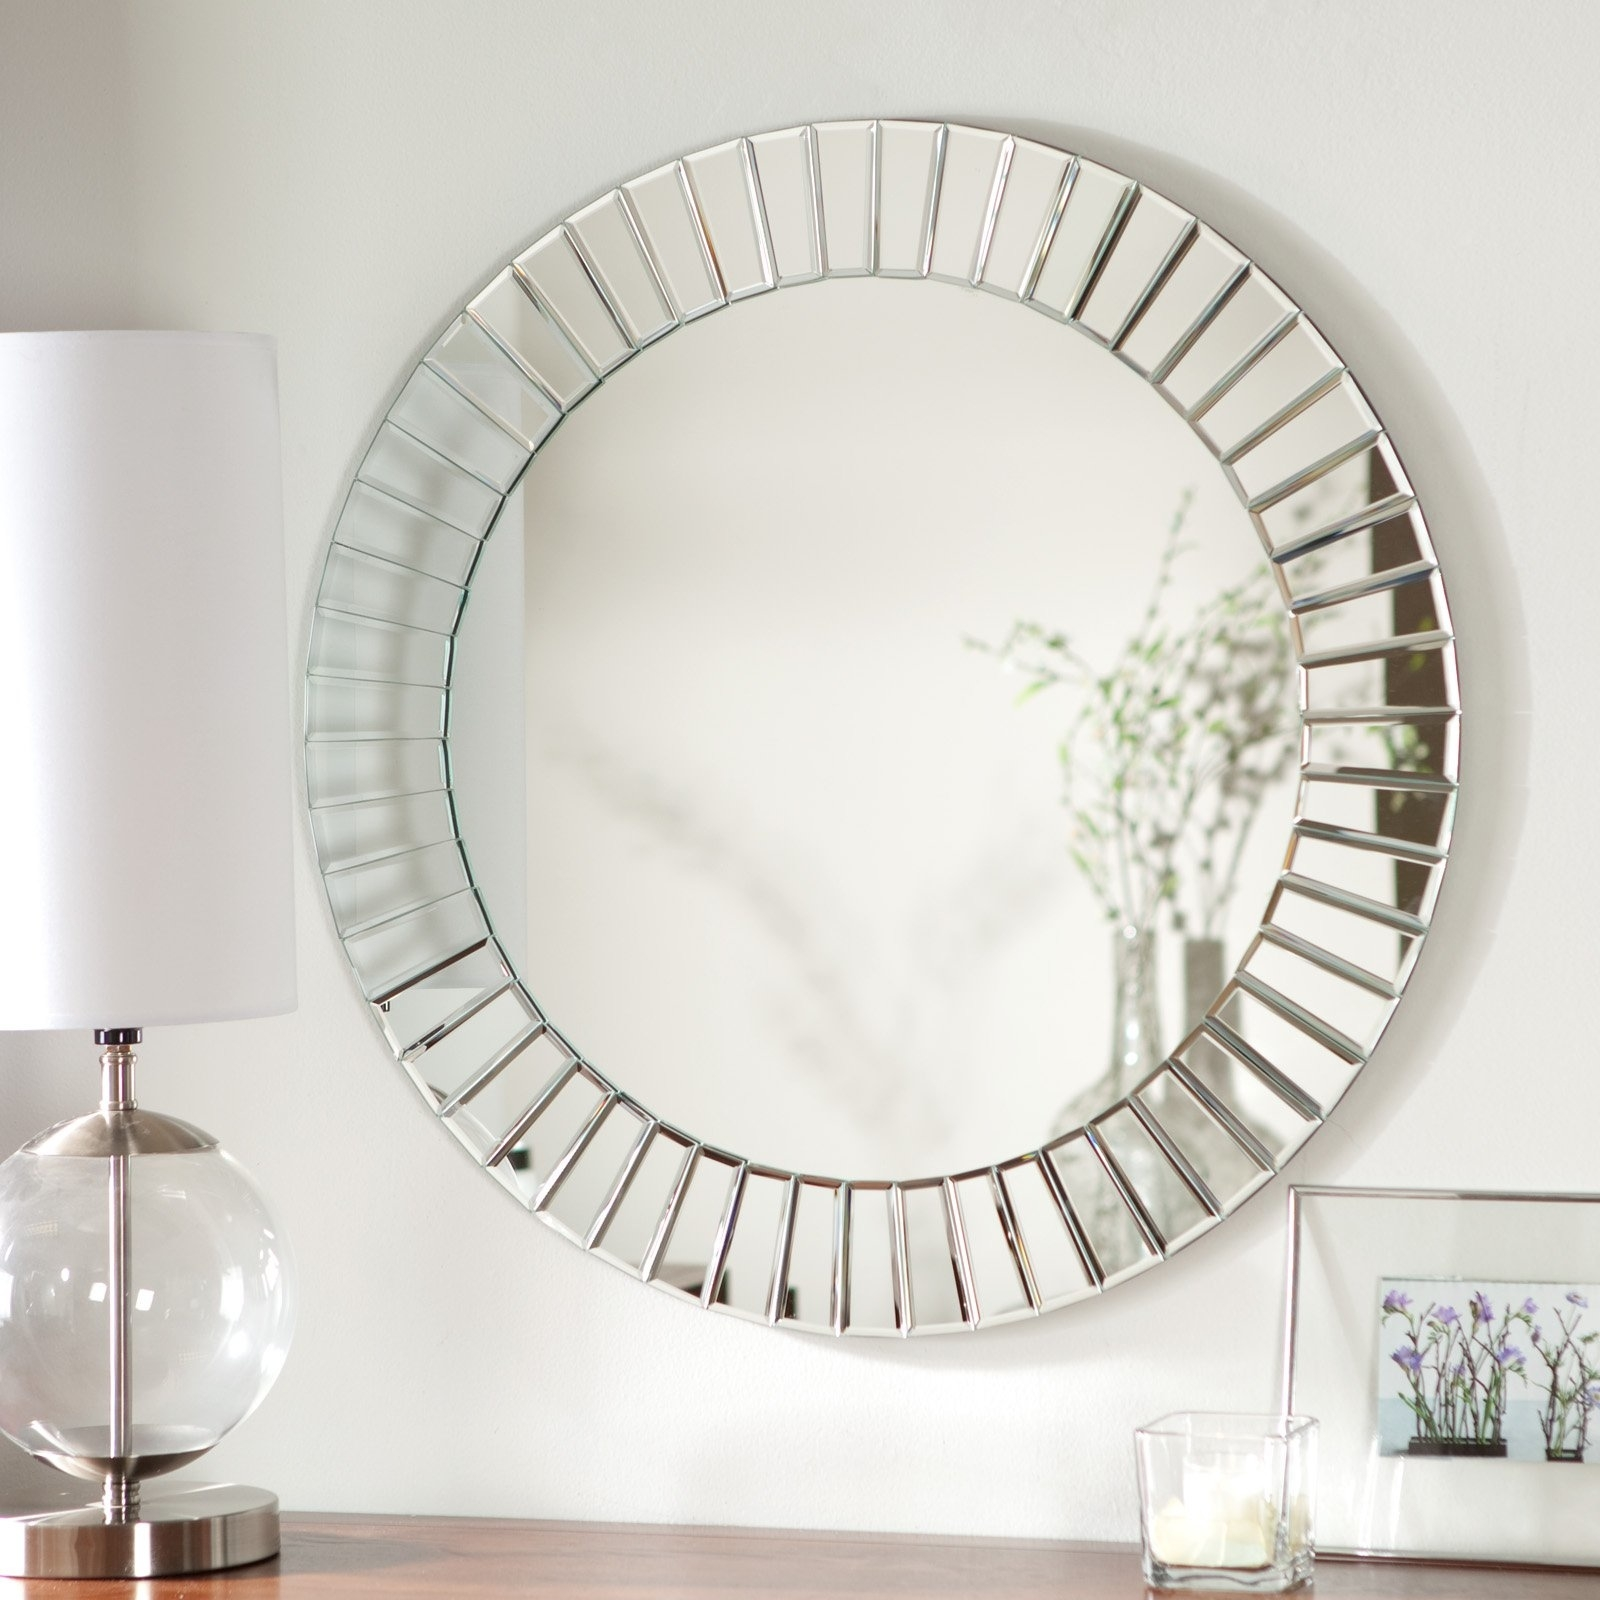 Decorative Bathroom Mirrors Sale Mirror Small Mirrors For Sale 4 Of 15 Photos